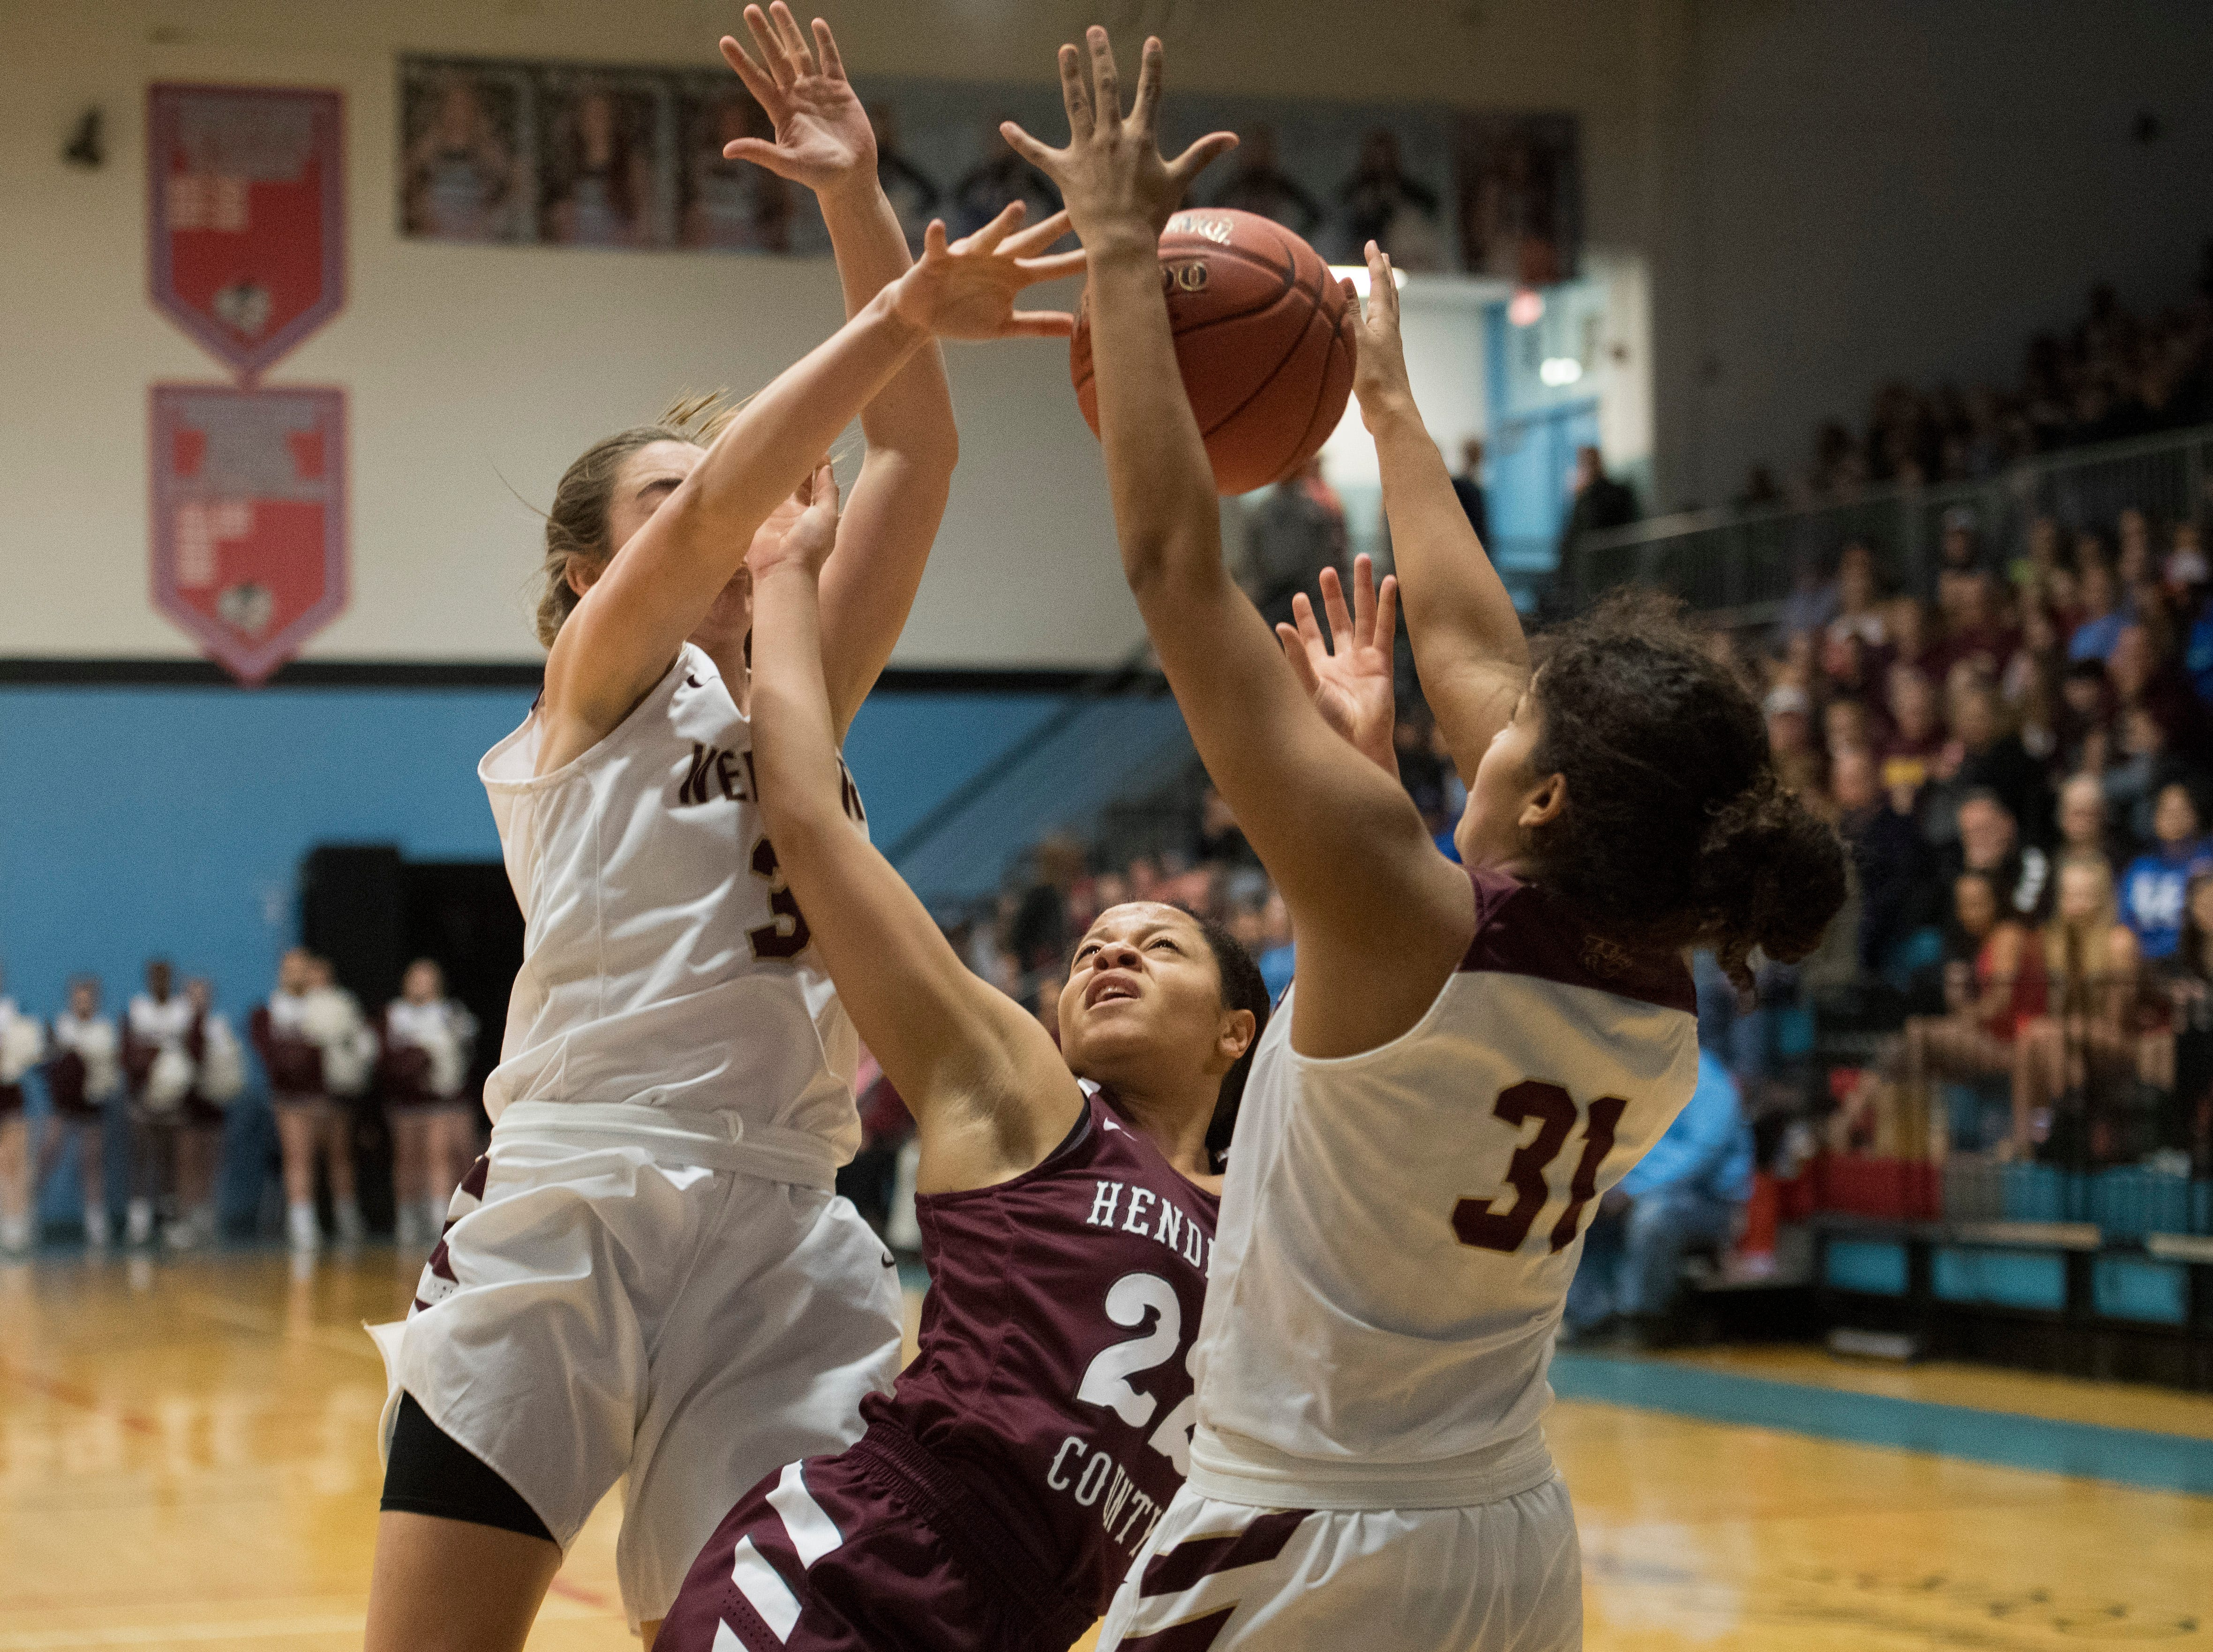 Henderson County's Lauren Hubbard (22) is blocked by Trojan defense during the 2019 Sixth District championship game against the Webster County Lady Trojans at Union County High School Thursday, Feb. 21, 2019.